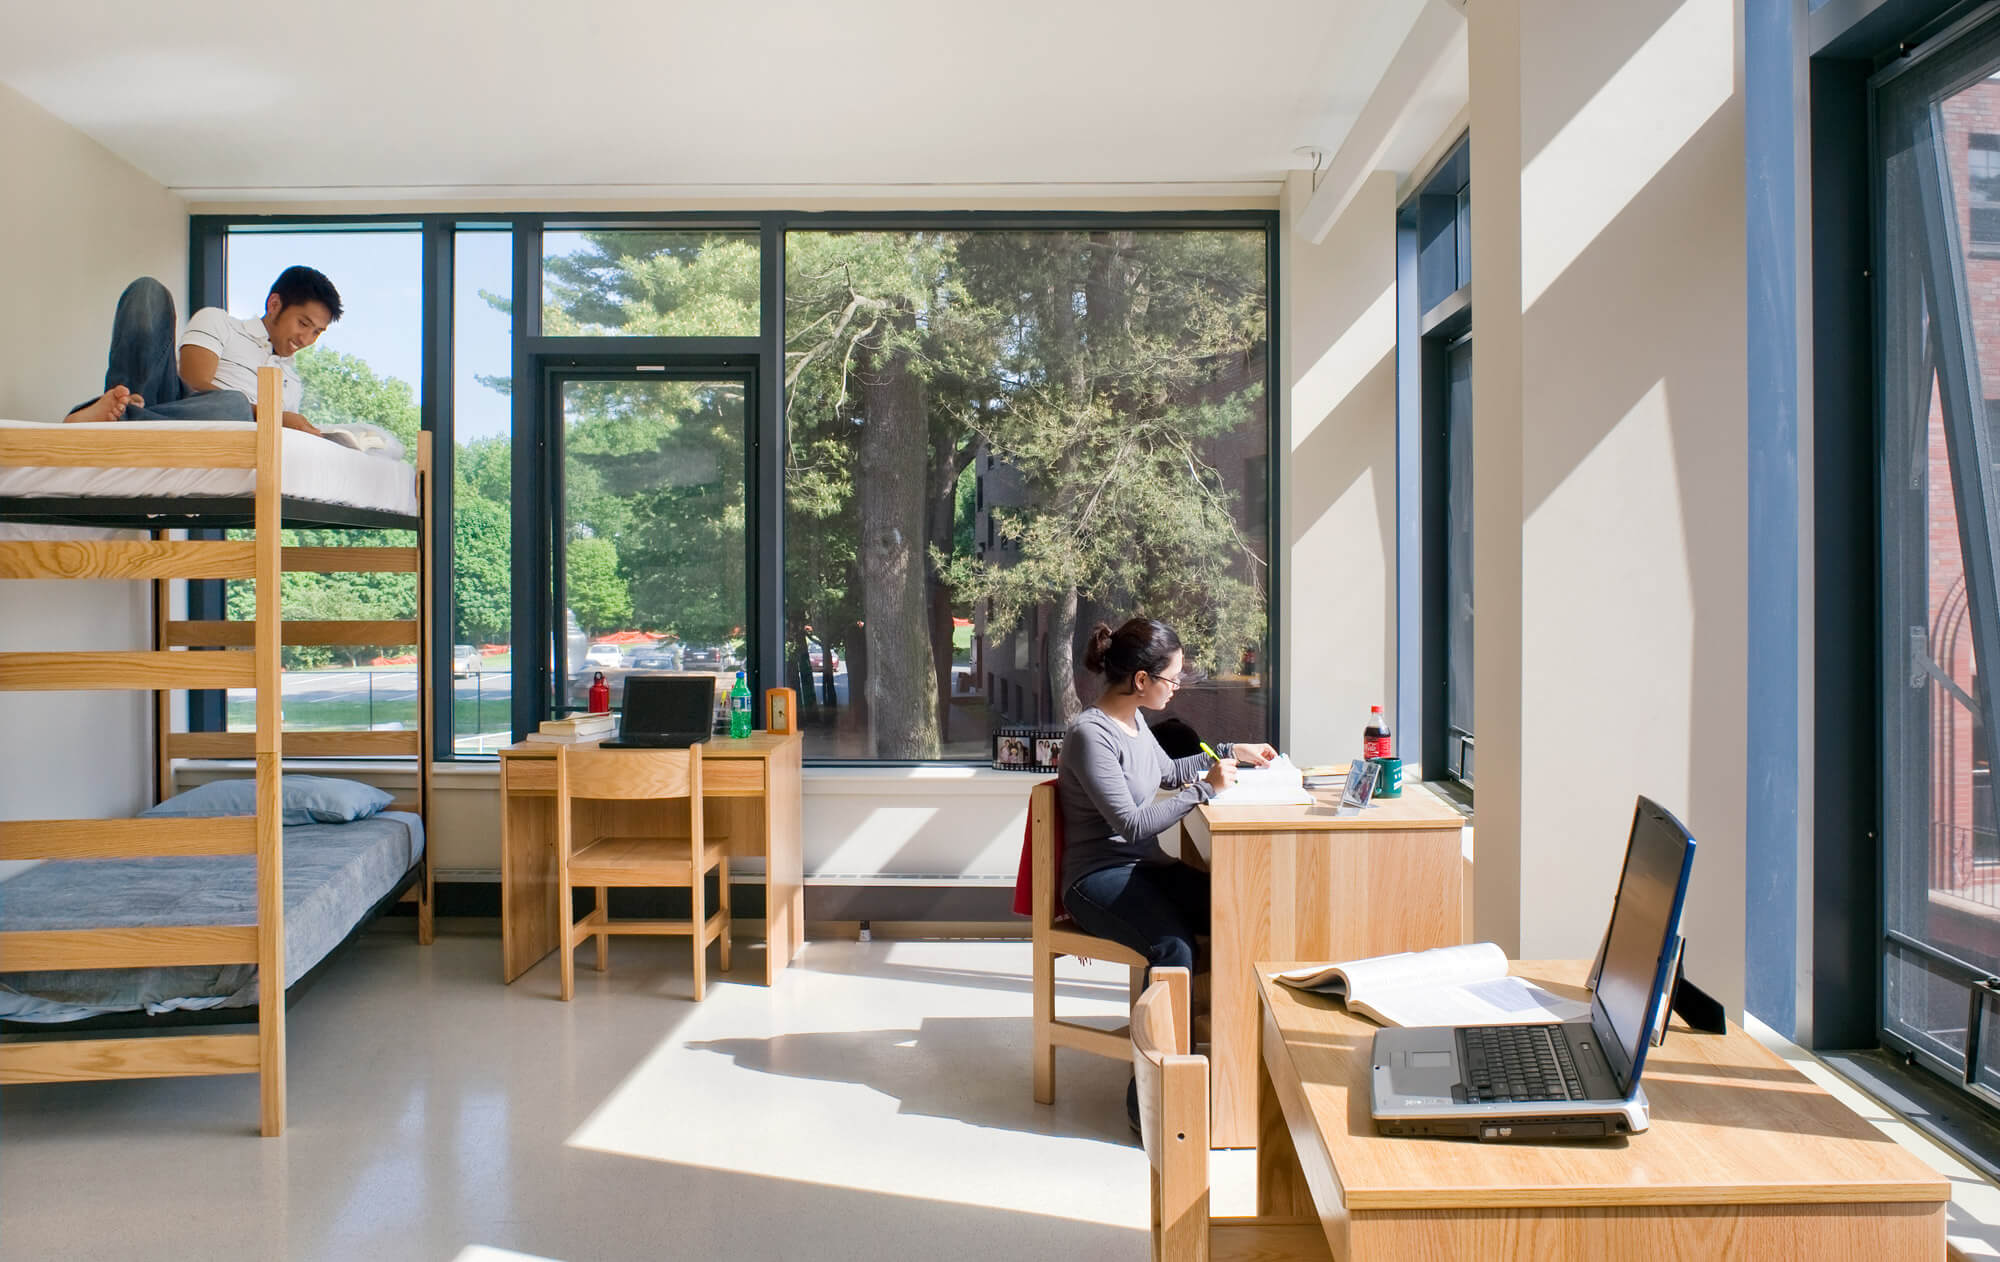 College dorm rooms with bunk beds, desks, and large windows with view onto the trees, letting in bright, natural light.